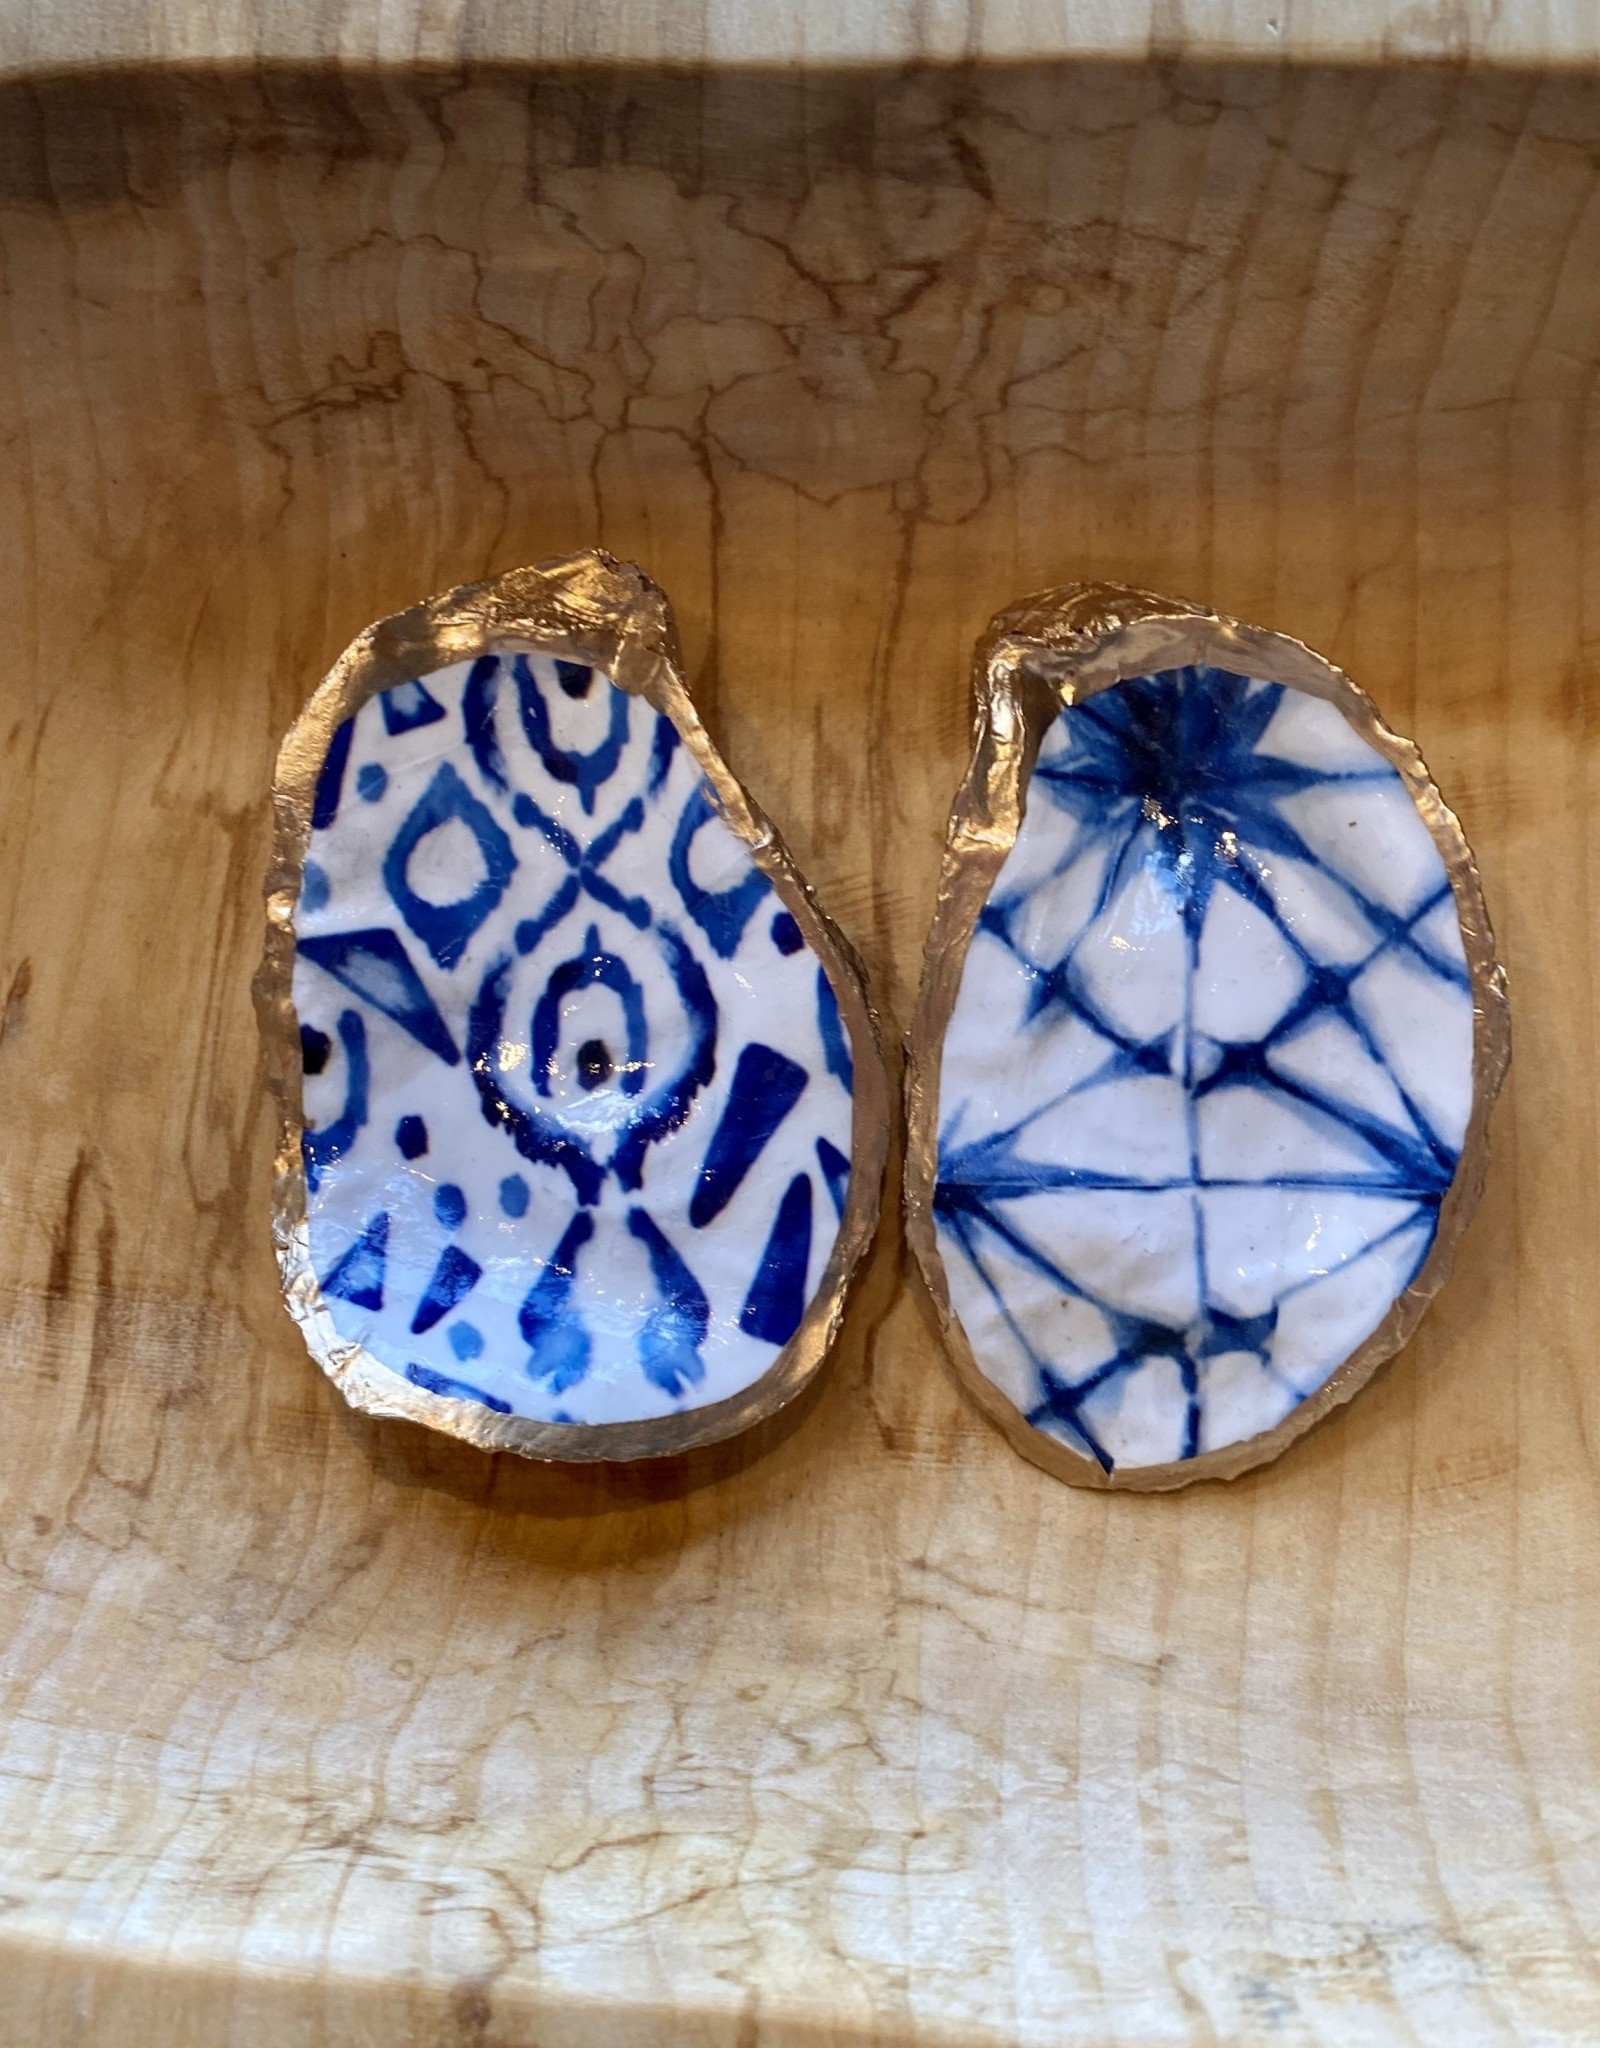 Kcrook Designs Blue/White Geometric Oyster Shell